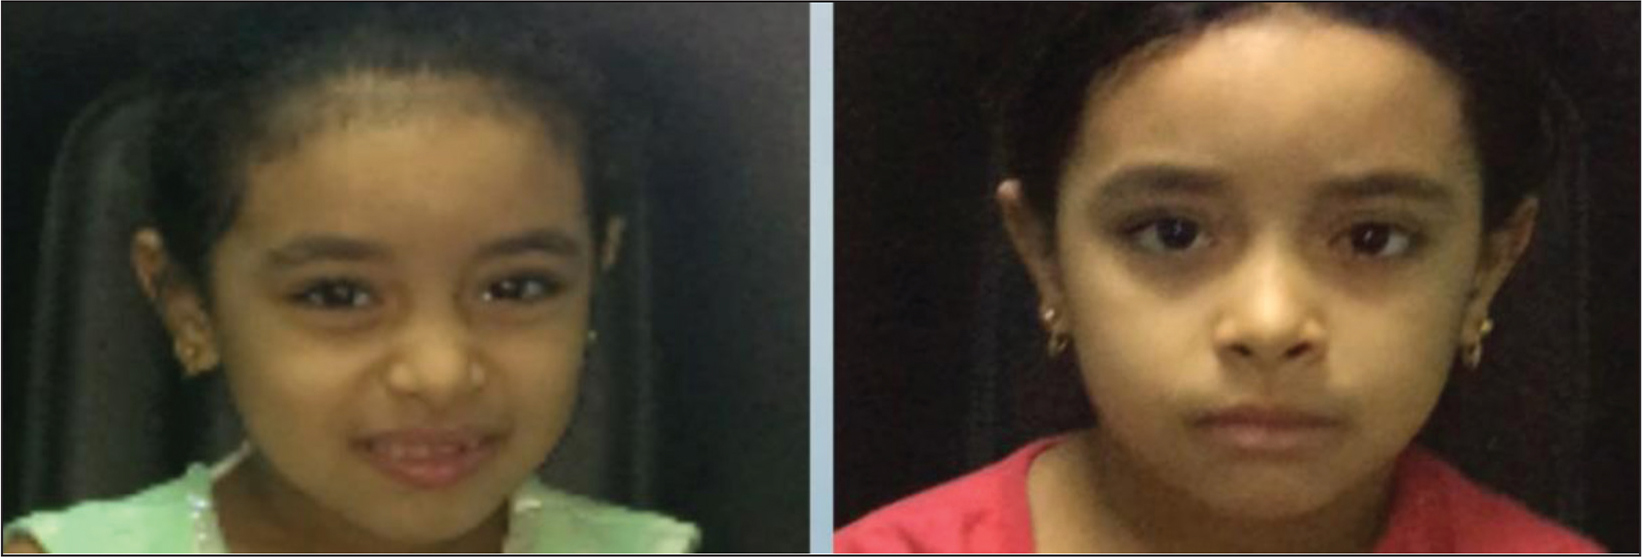 Complete correction of face turn with straight head in patient 9 of non-transposition group.